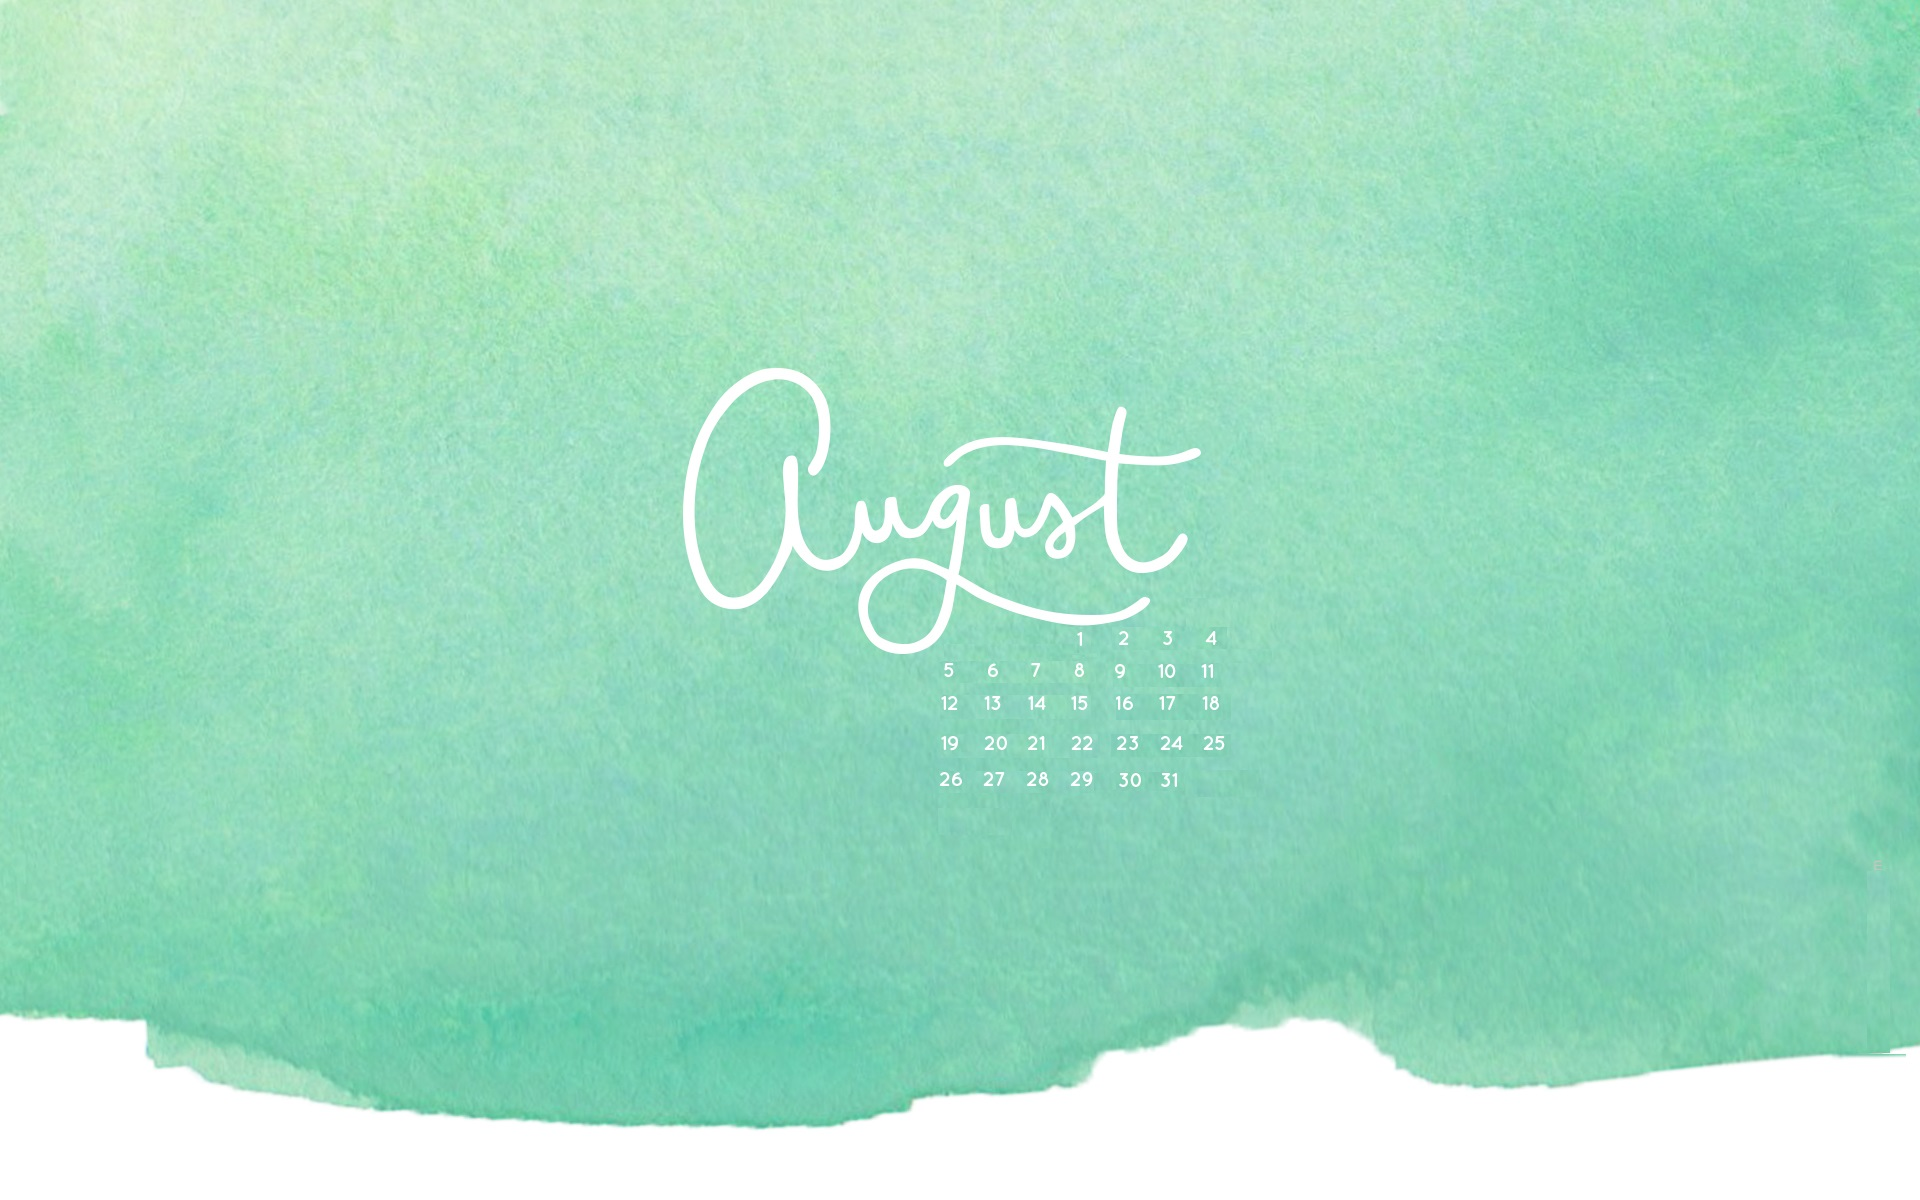 August 2018 Desktop Calendar Wallpapers